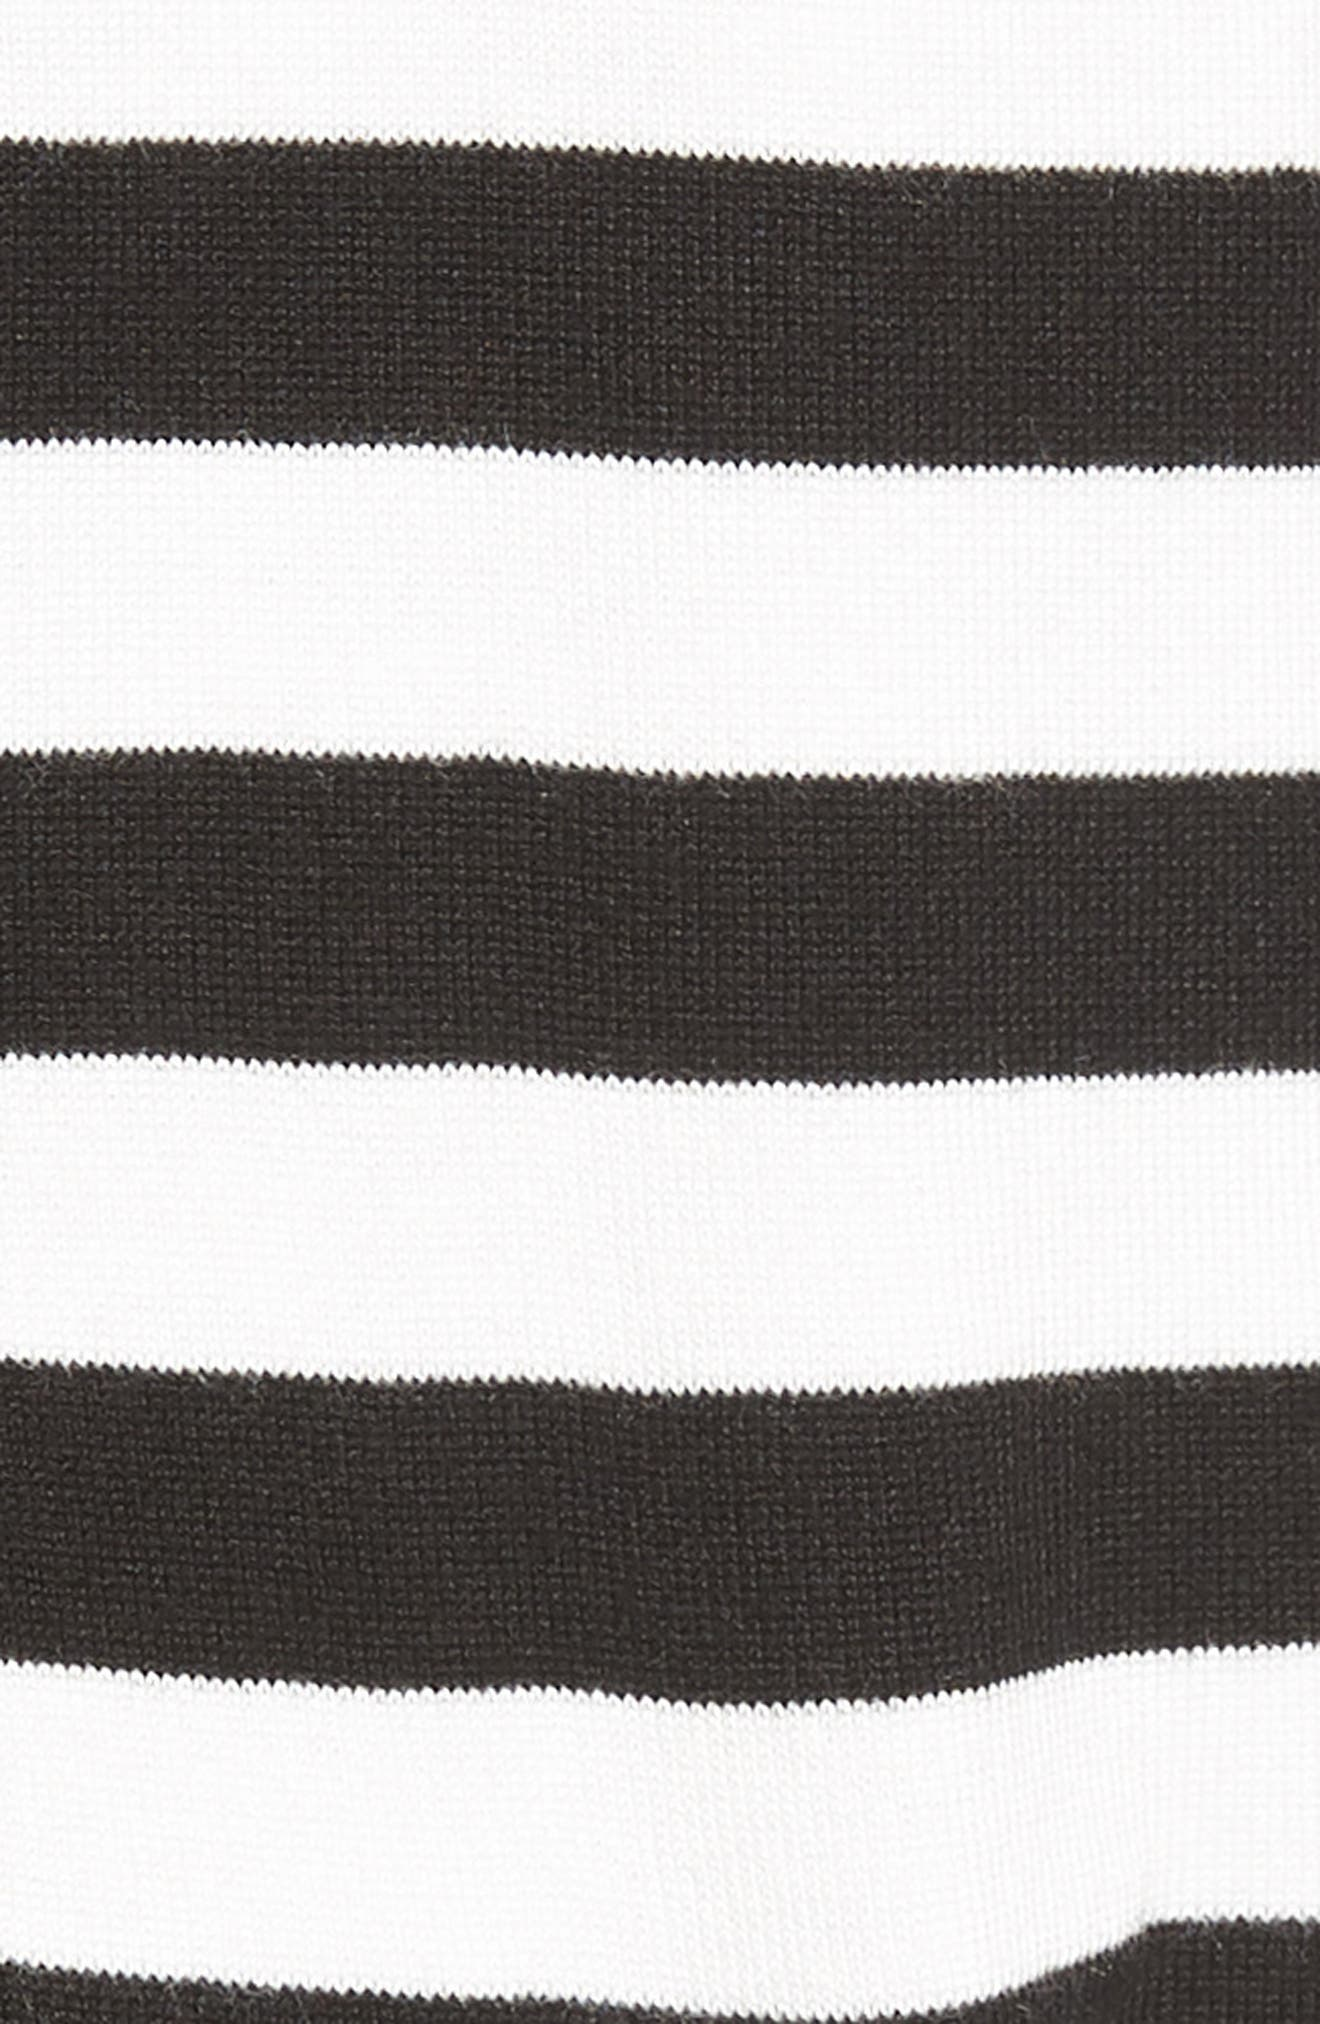 Relaxed Pocket Cardigan,                             Alternate thumbnail 6, color,                             Black- Ivory Stripe